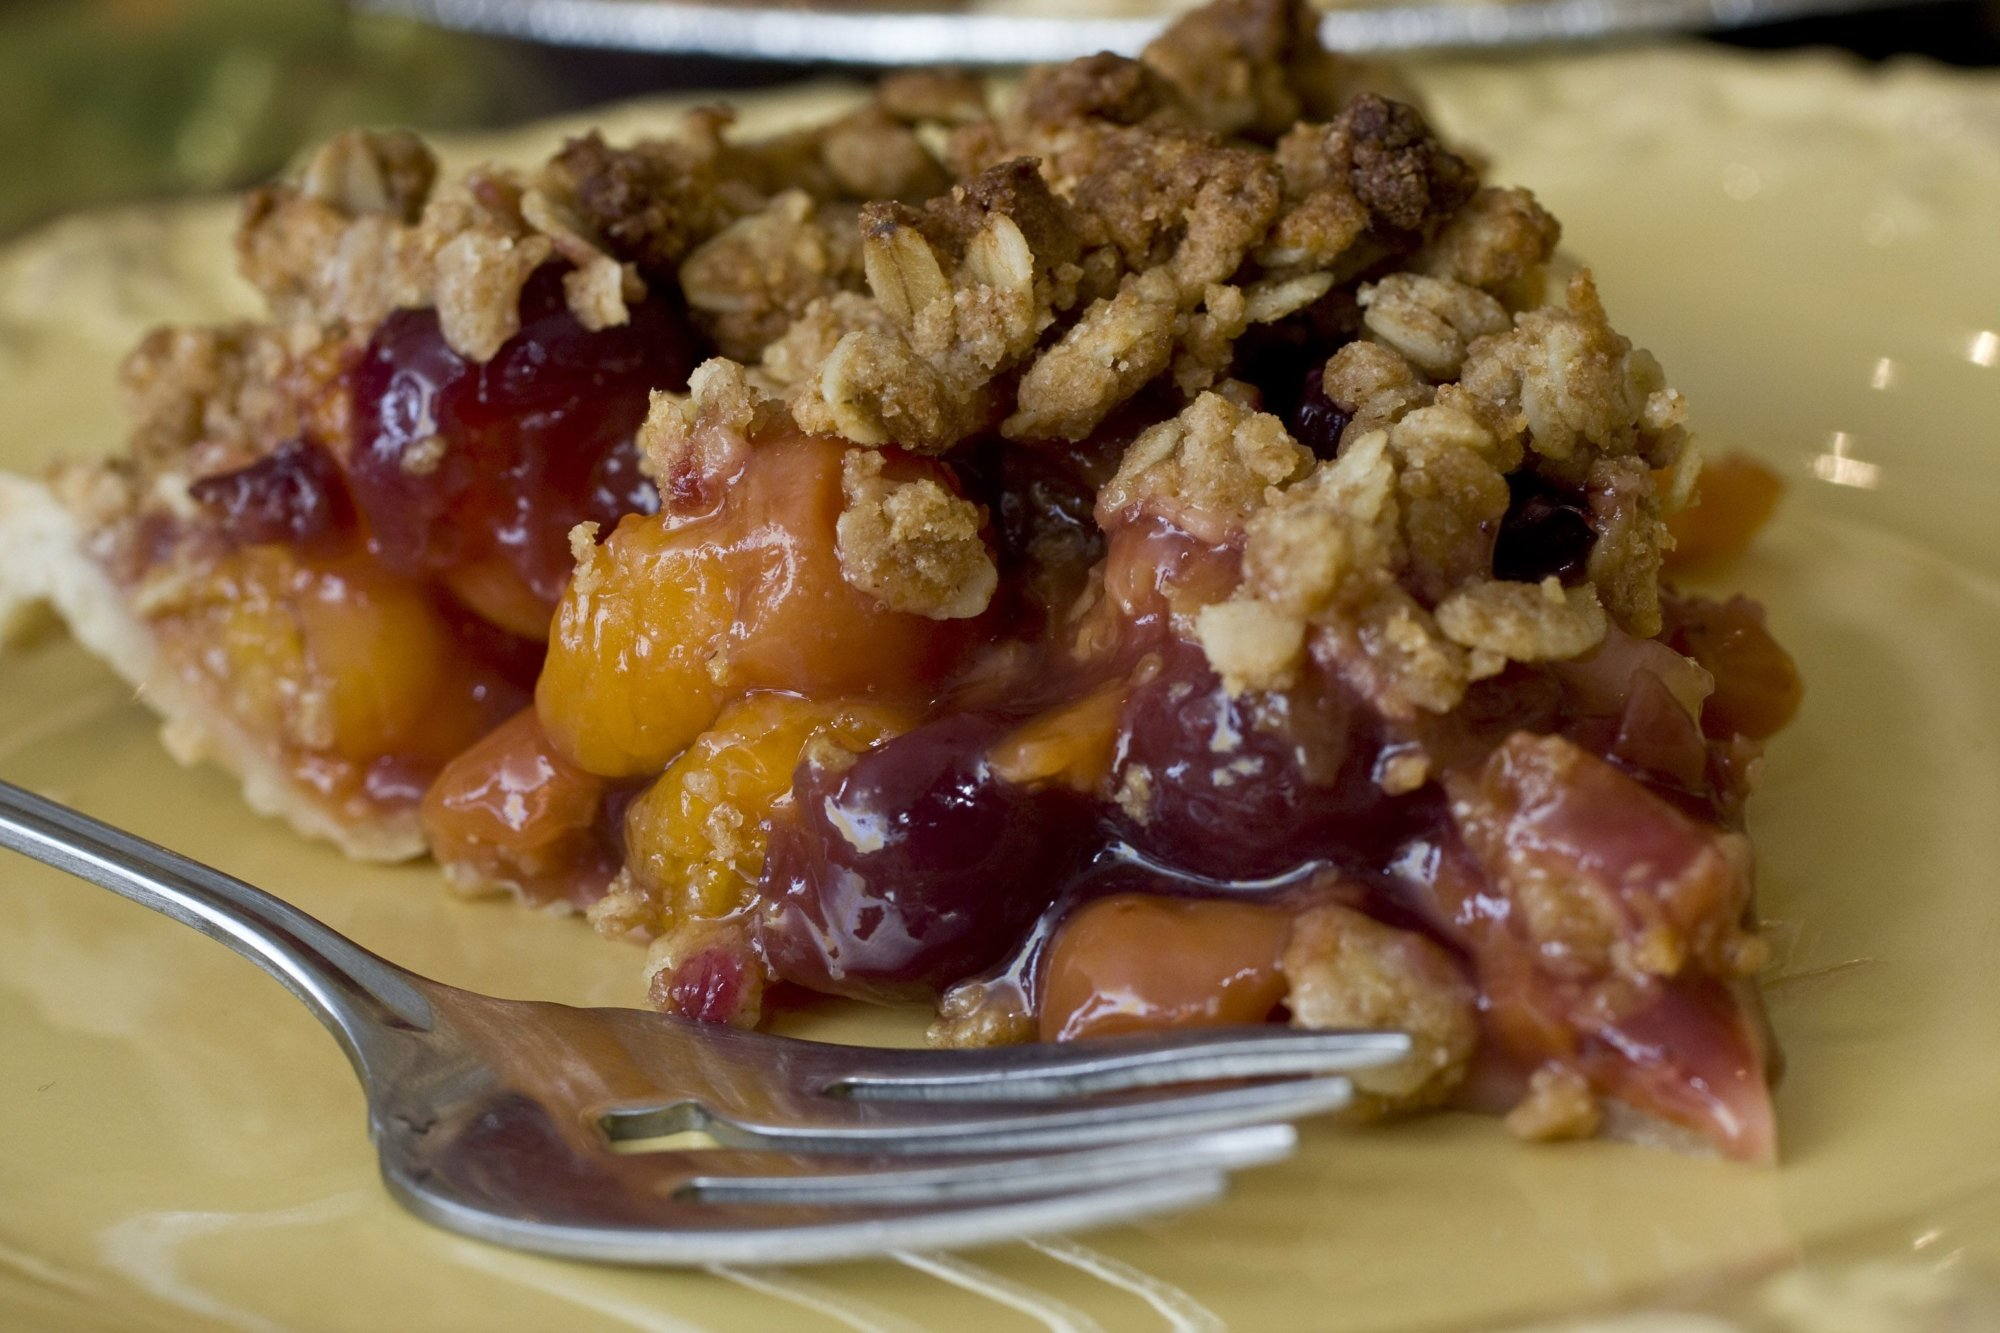 This photo taken Nov. 8, 2009 shows cherry-apricot crumb pie. A slice of pie on Thanksgiving is as traditional as a serving of turkey. You can make this tradition healthier by making good choices when choosing the crust. This cherry-apricot crumb pie is topped with a low-fat oat crumble made with whole-wheat flour that helps reduce any dietary regret. (AP Photo/Larry Crowe)